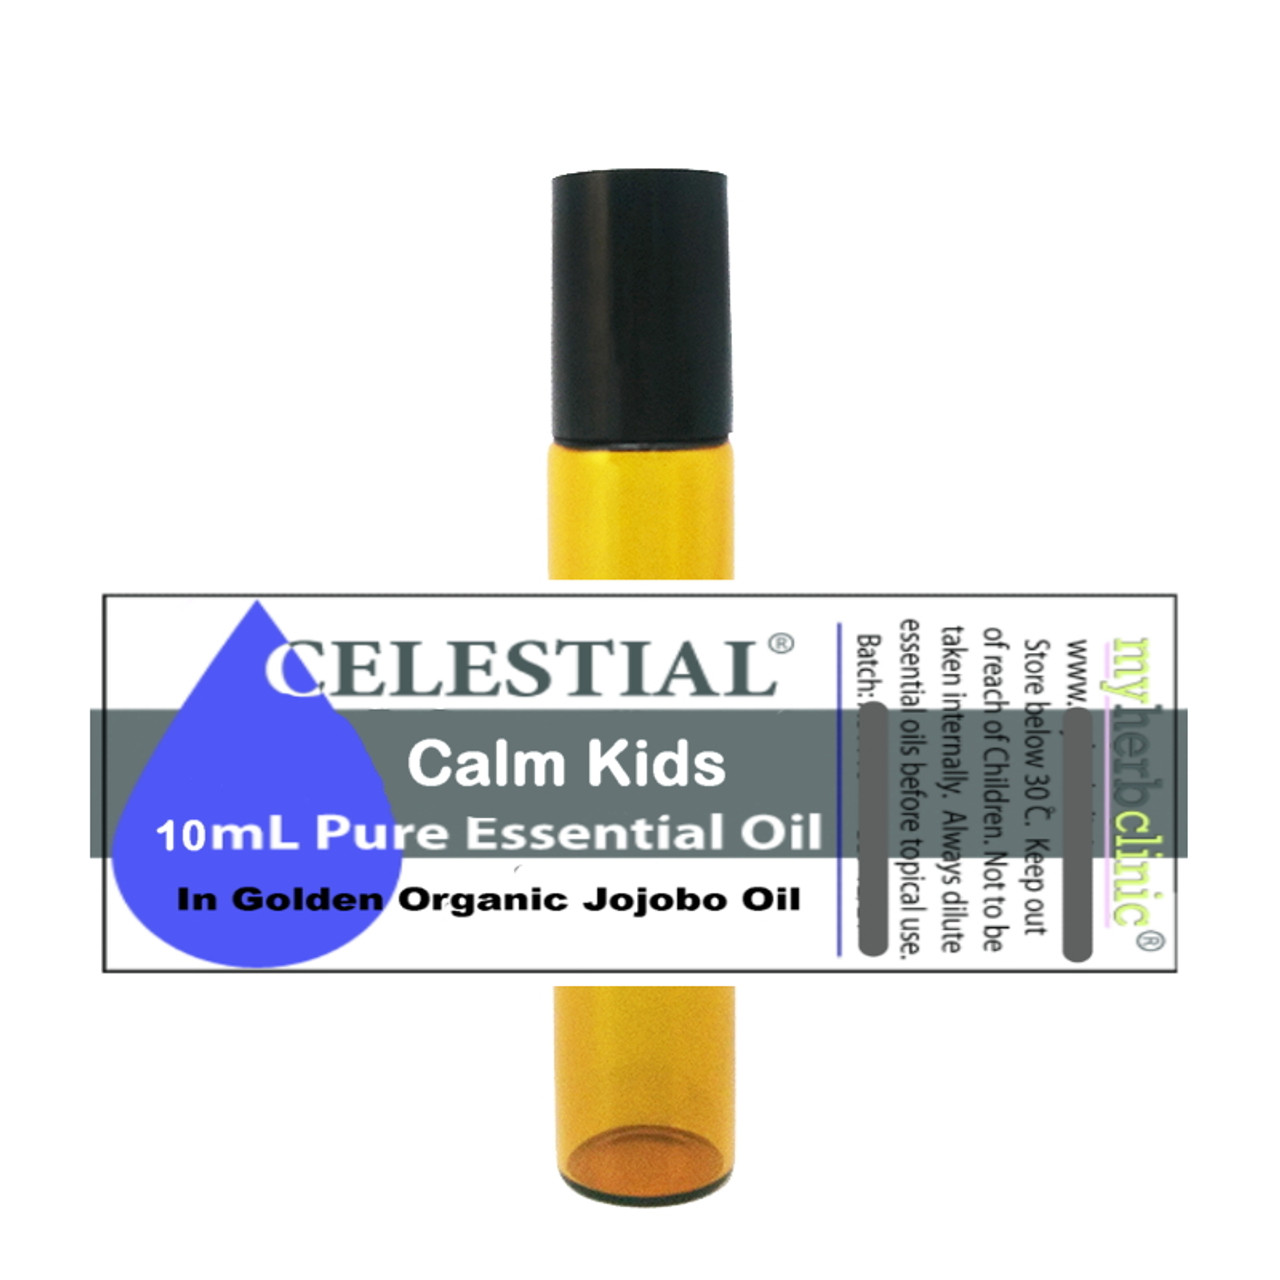 Celestial Calm Kids Therapeutic Essential Oil Organic Roll On Peaceful Home